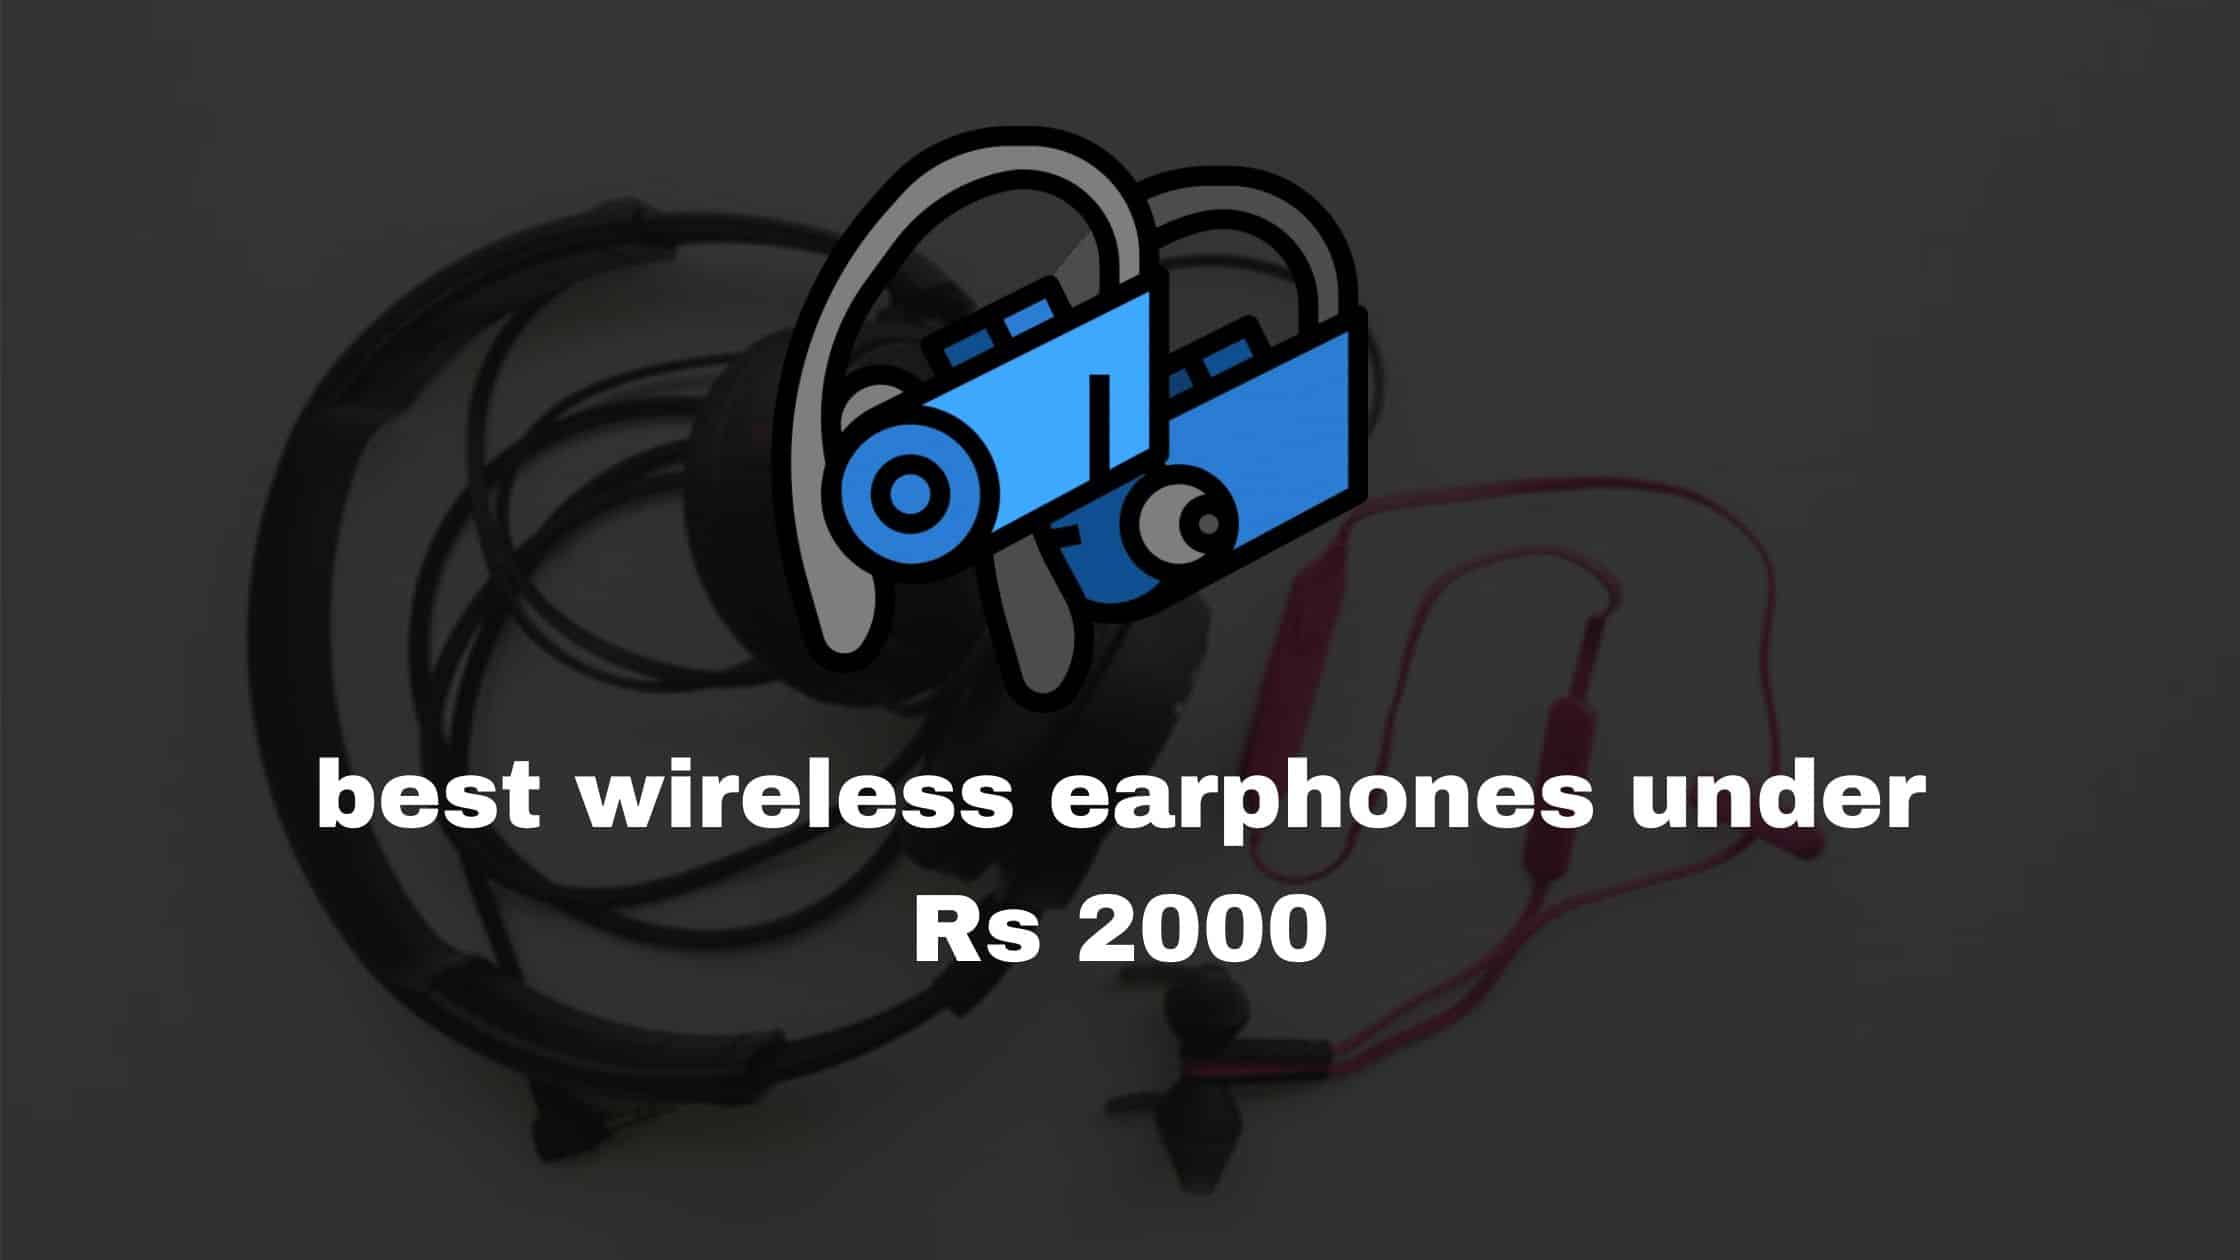 best wireless earphones under Rs 2000 -Tested & Reviewed